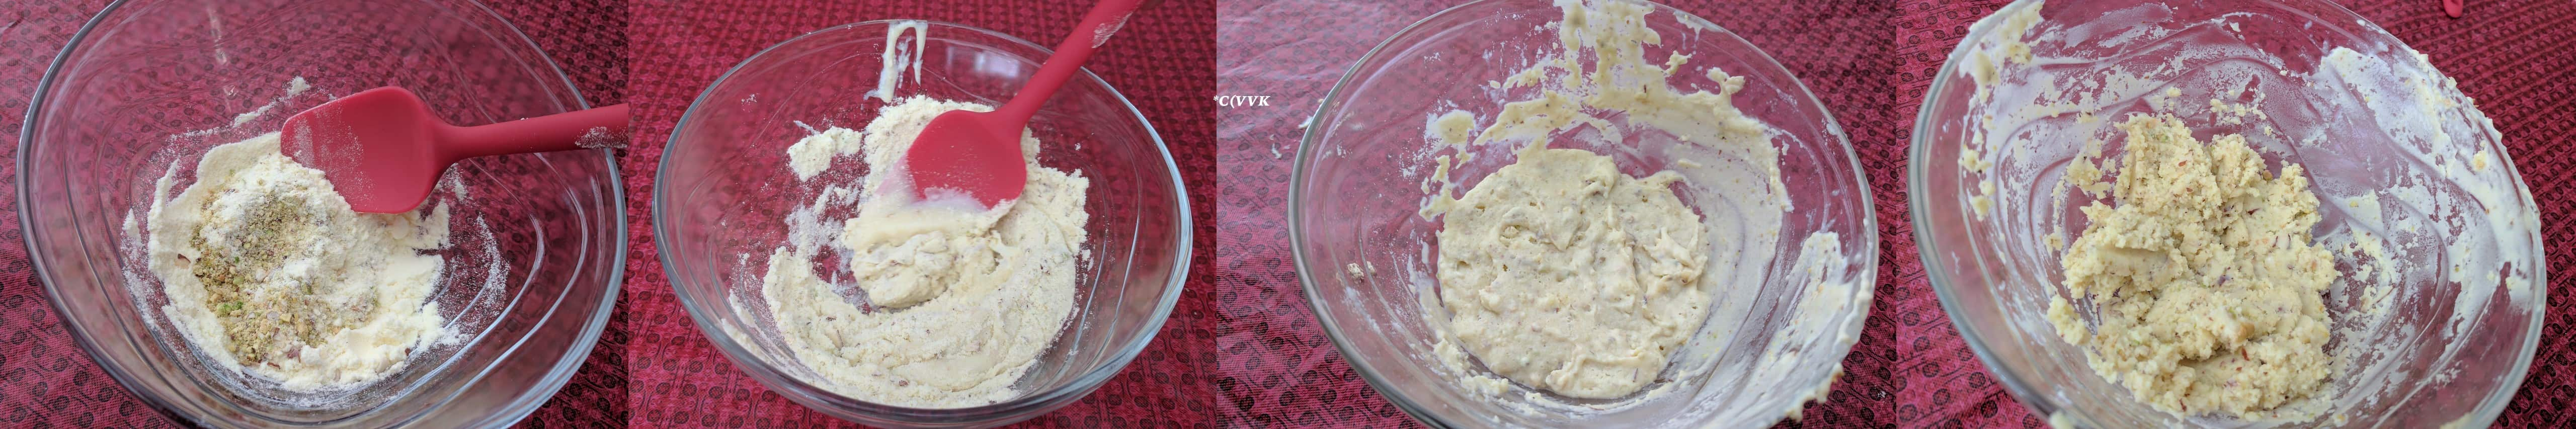 Adding the milk powder, crushed pistachios/almonds, cardamom powder and condensed milk to a microwave safe bowl and mixing